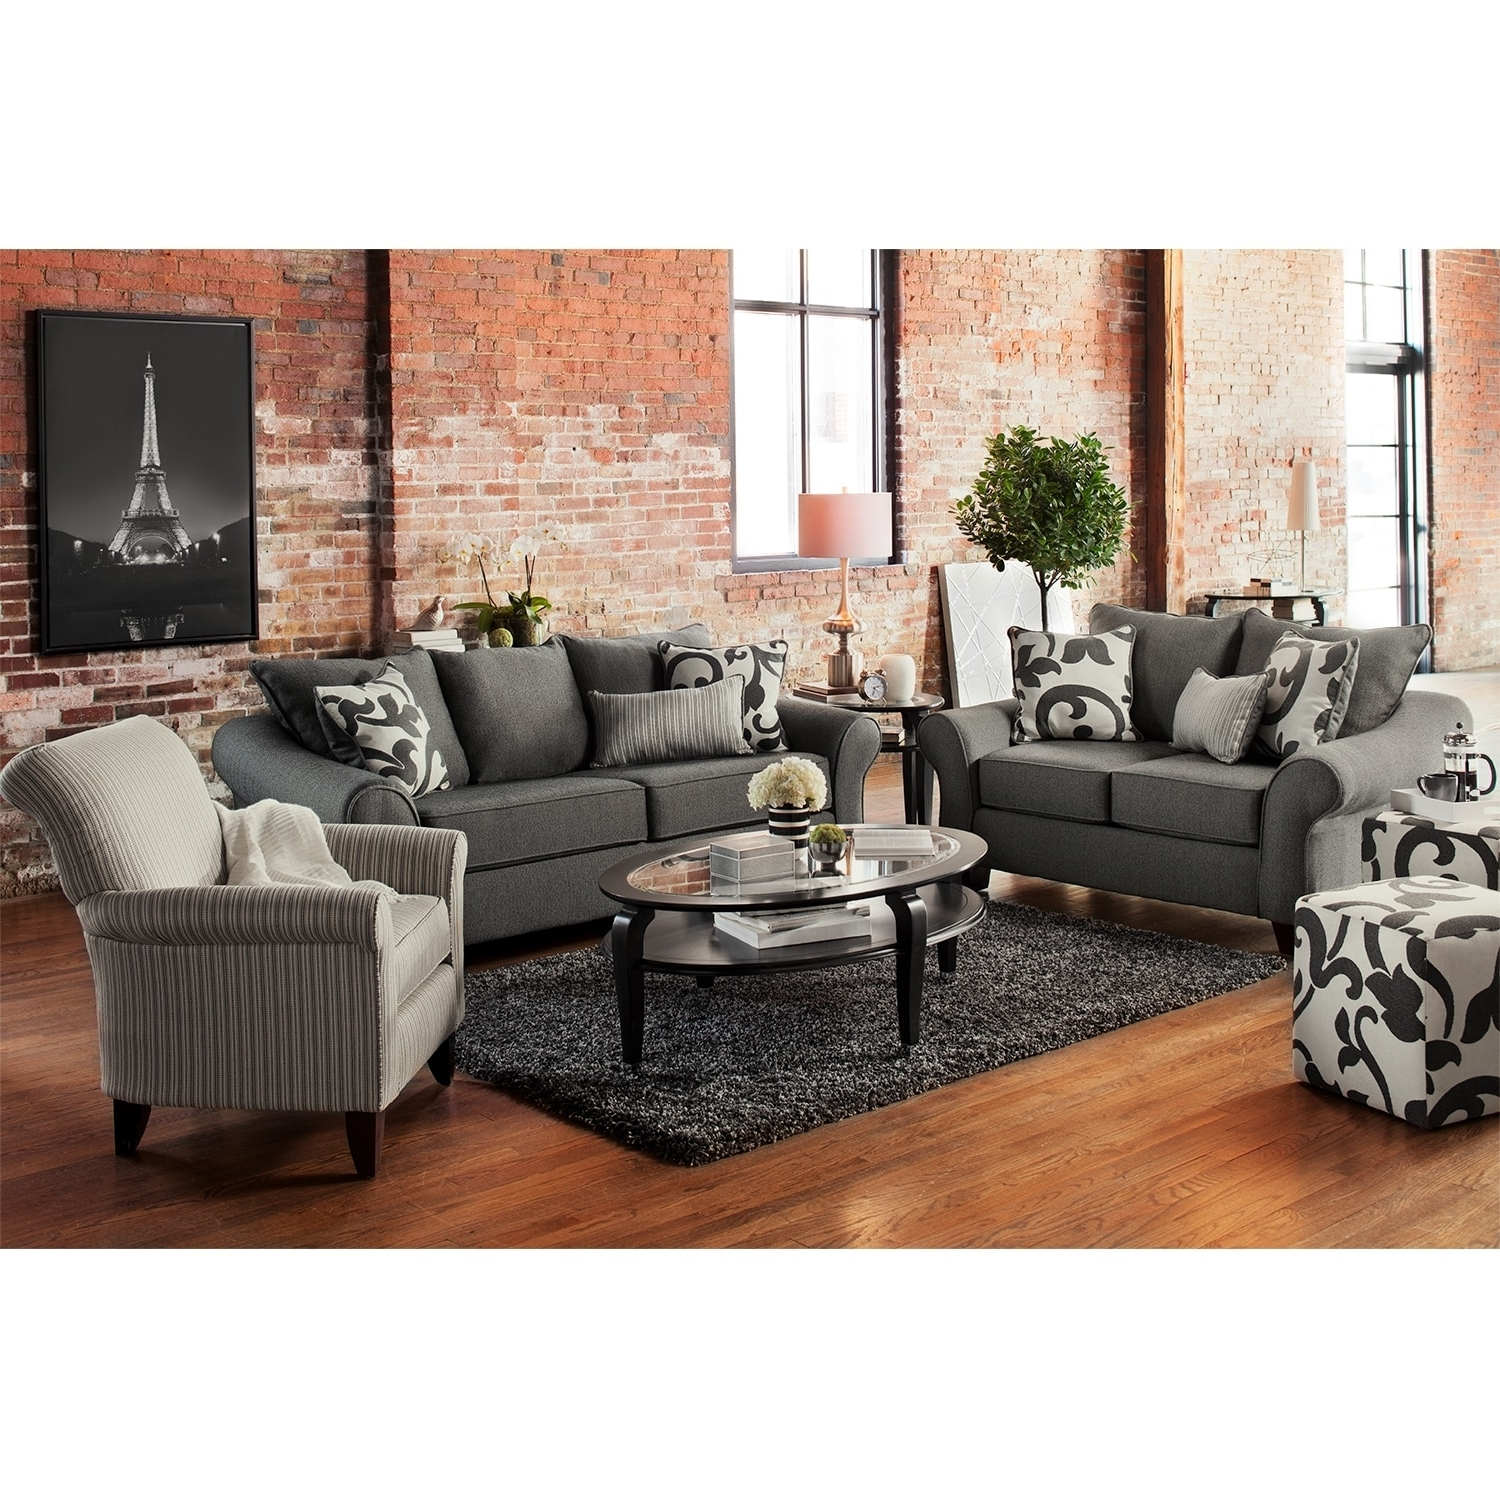 Sofa And Accent Chair Sets Regarding Most Current Sofa Loveseat And Chair Set Pcs Black Classic Leather Sofaseat (View 13 of 15)